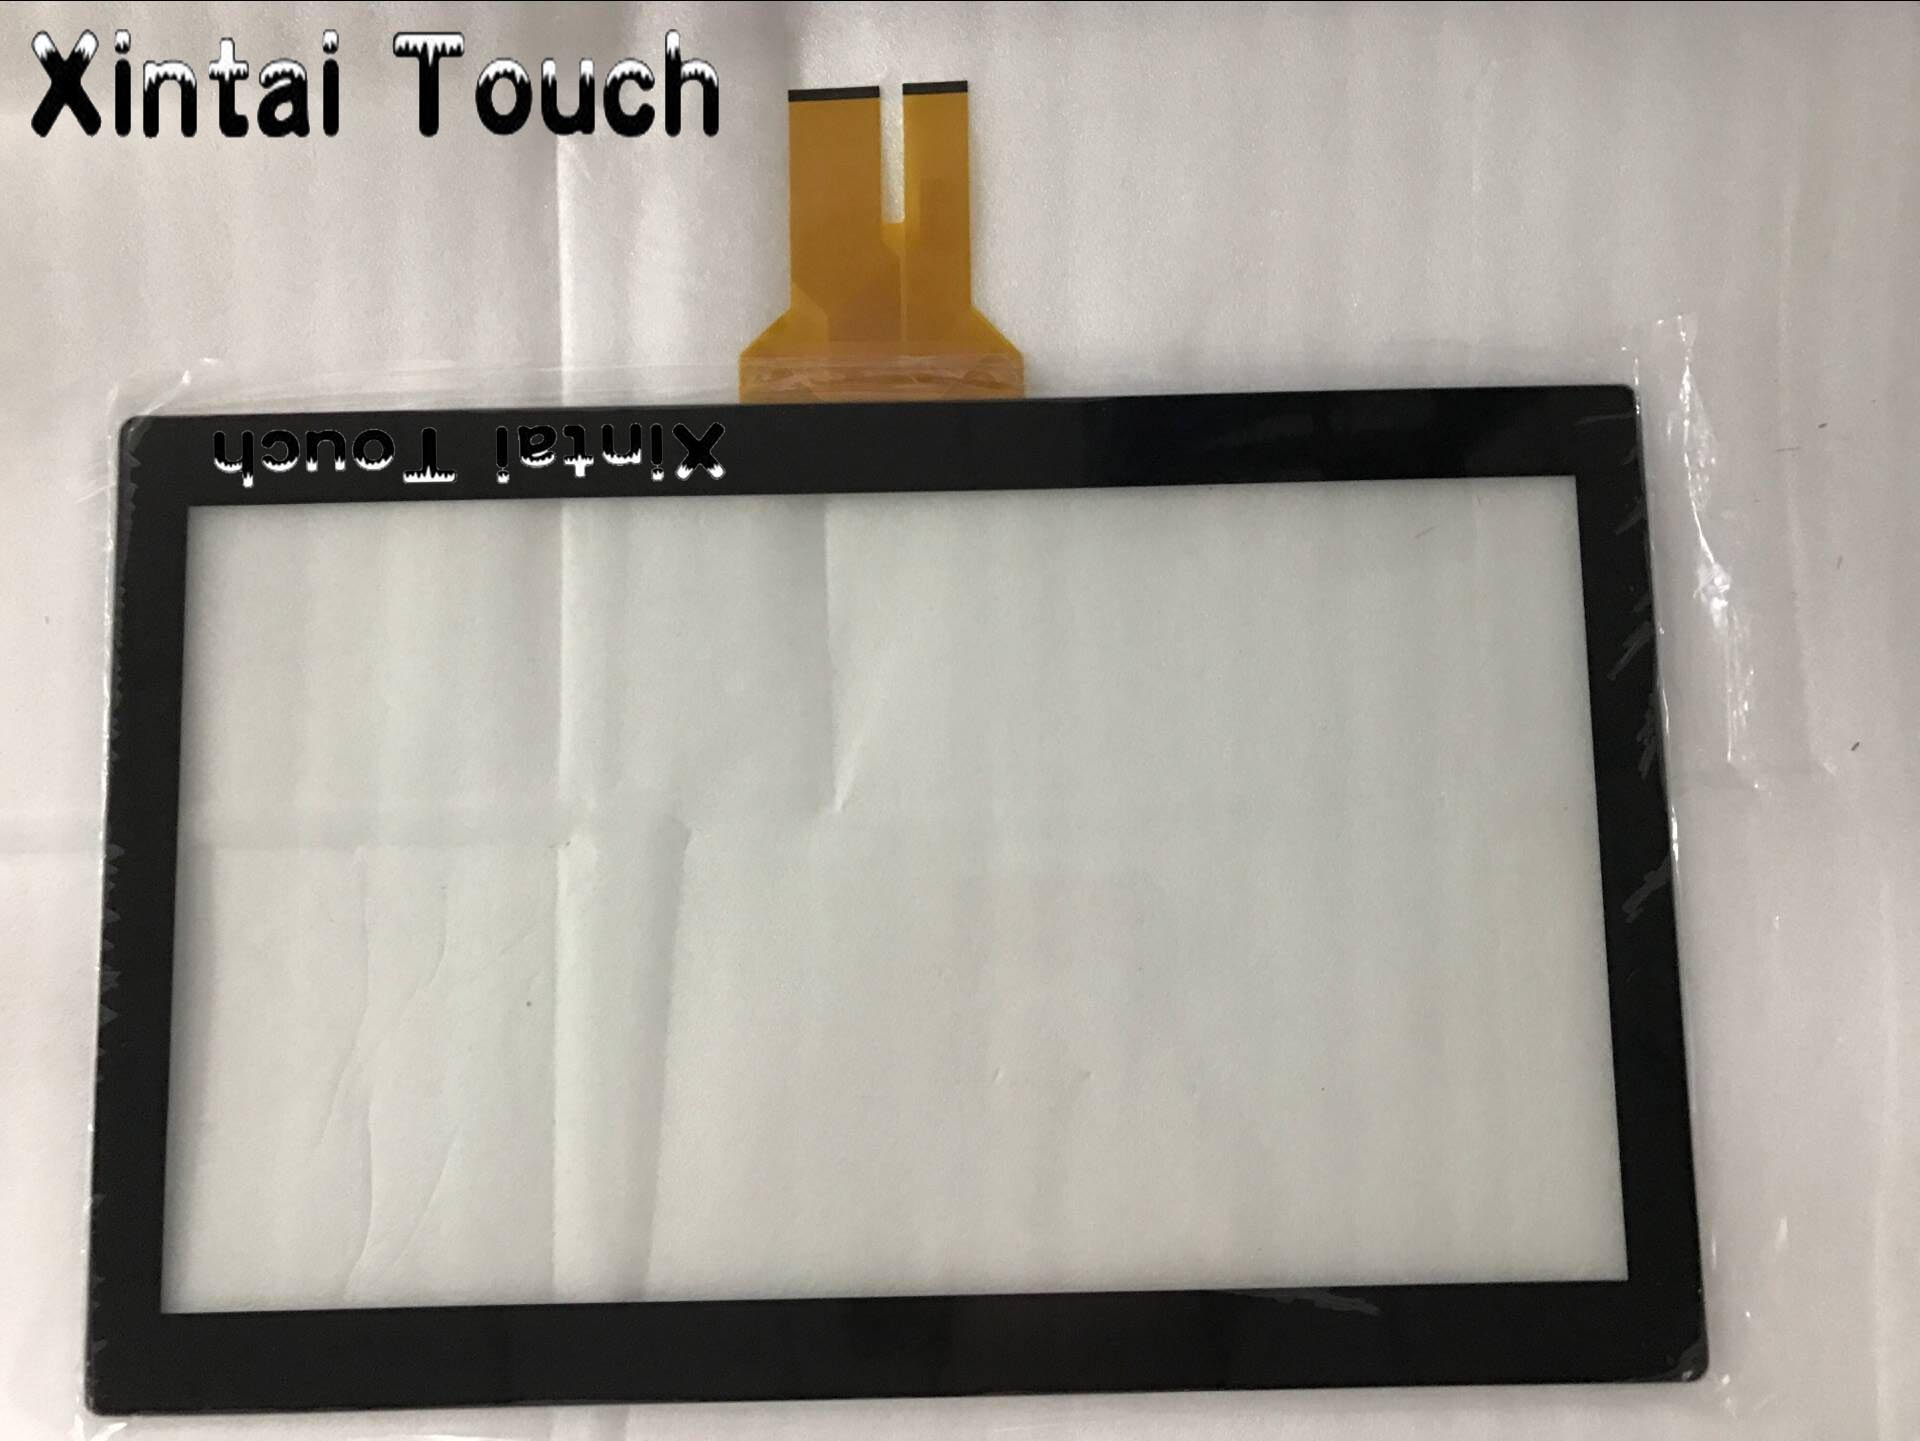 15.6 Inch 10 Points Capacitive Multi Touch Screen Overlay/ Multi-Touch Screen Panel Kit for LCD Monitor with EETI controller